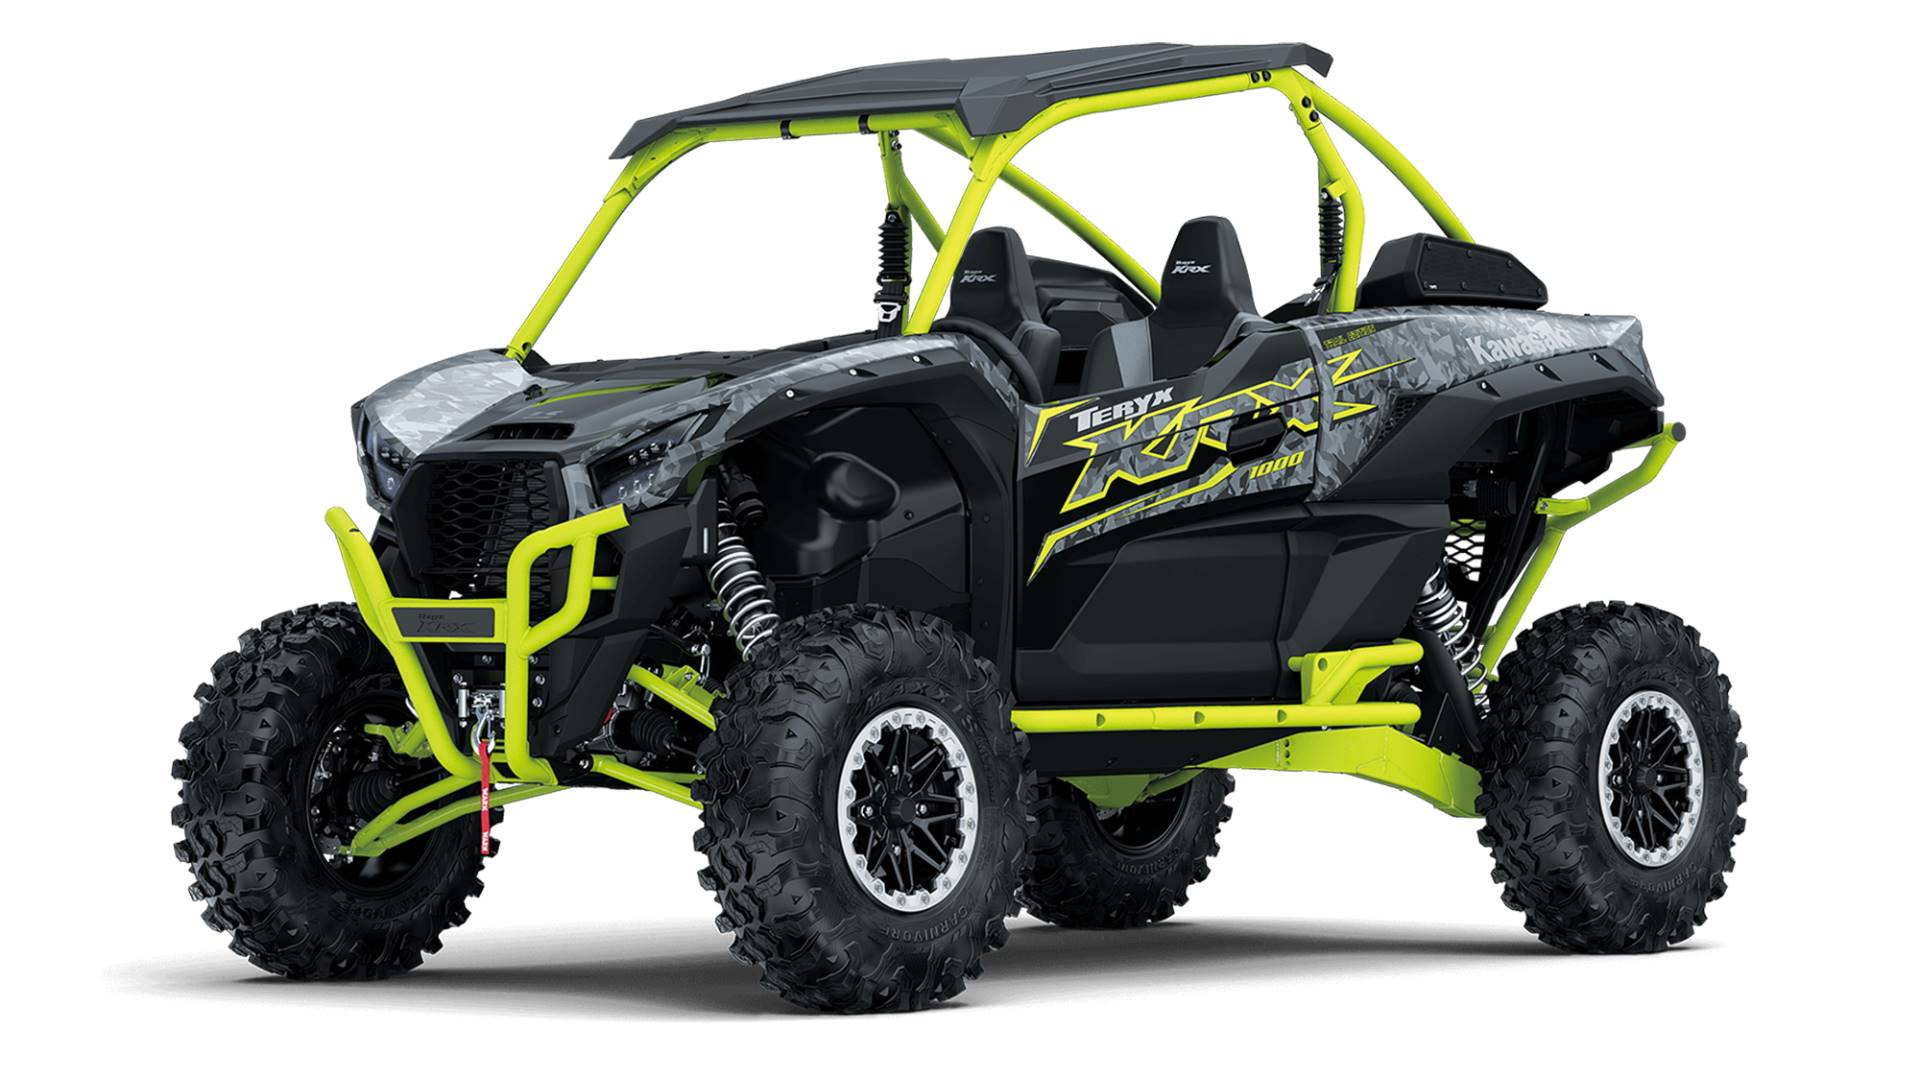 2021 Kawasaki TERYX KRX 1000 TRAIL EDITION in Union Gap, Washington